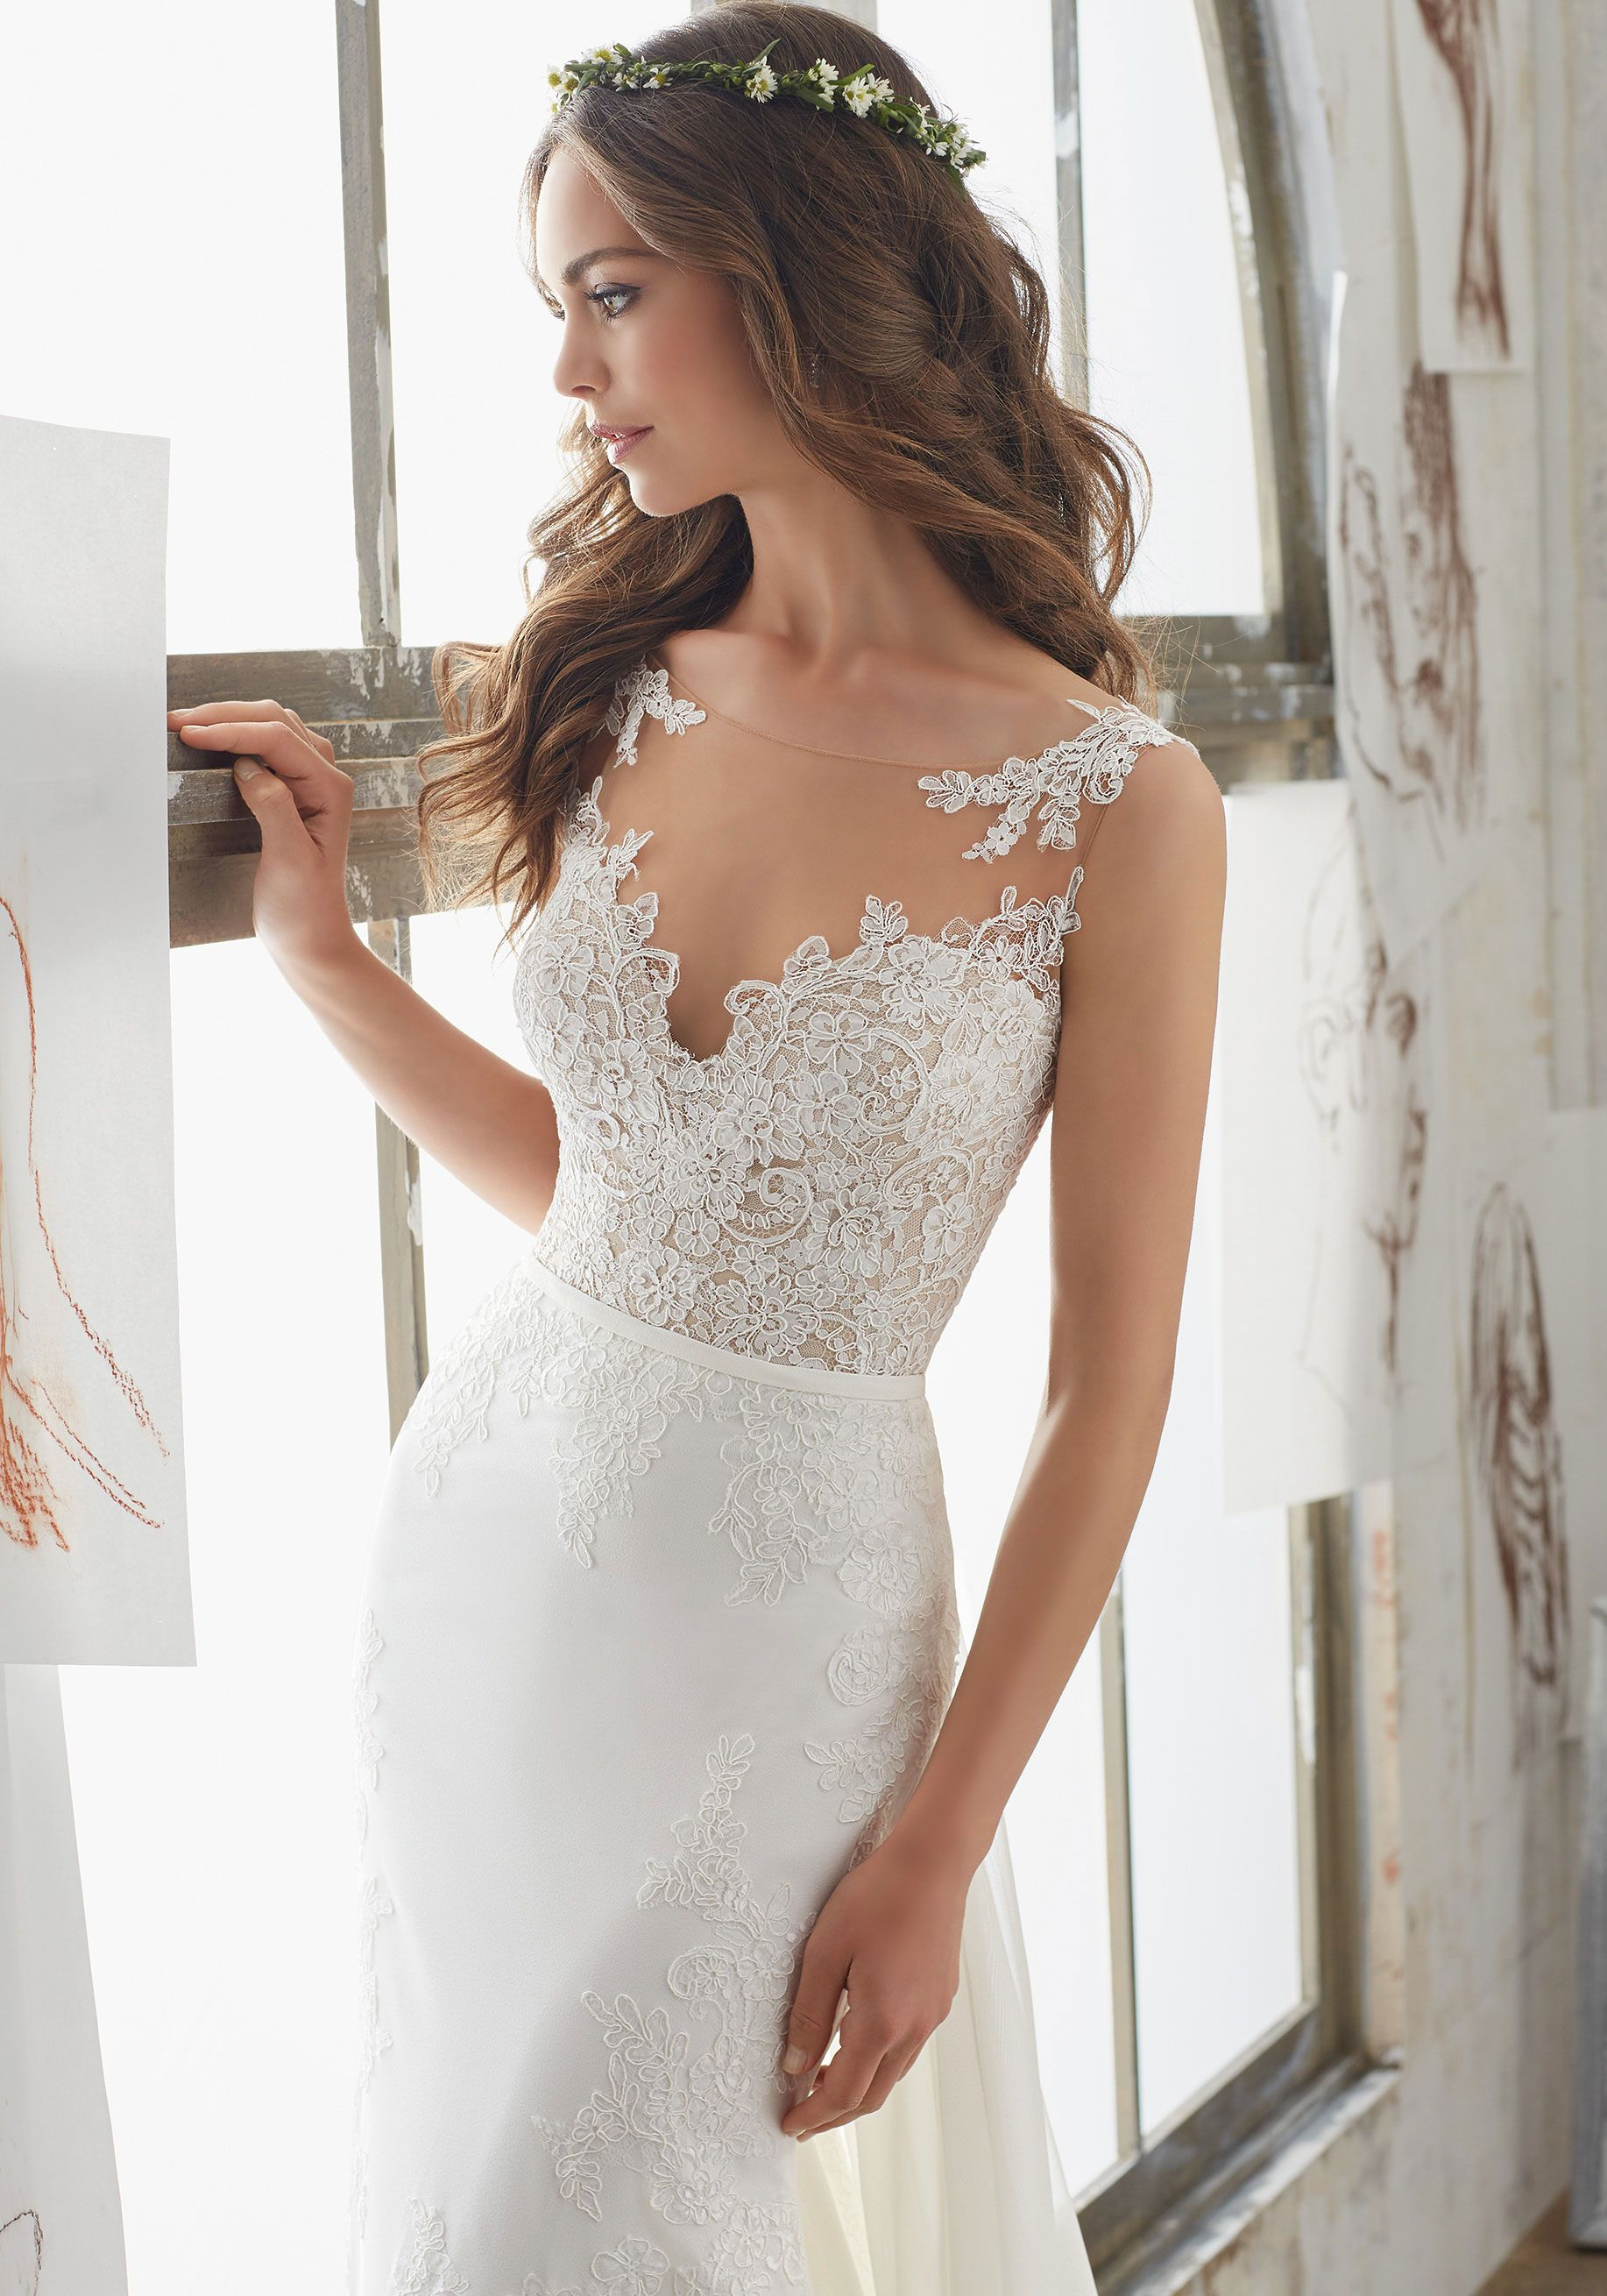 2017 Wedding Dresses And Bridal Gowns By Morilee Madeline Gardner This Sheath Gown